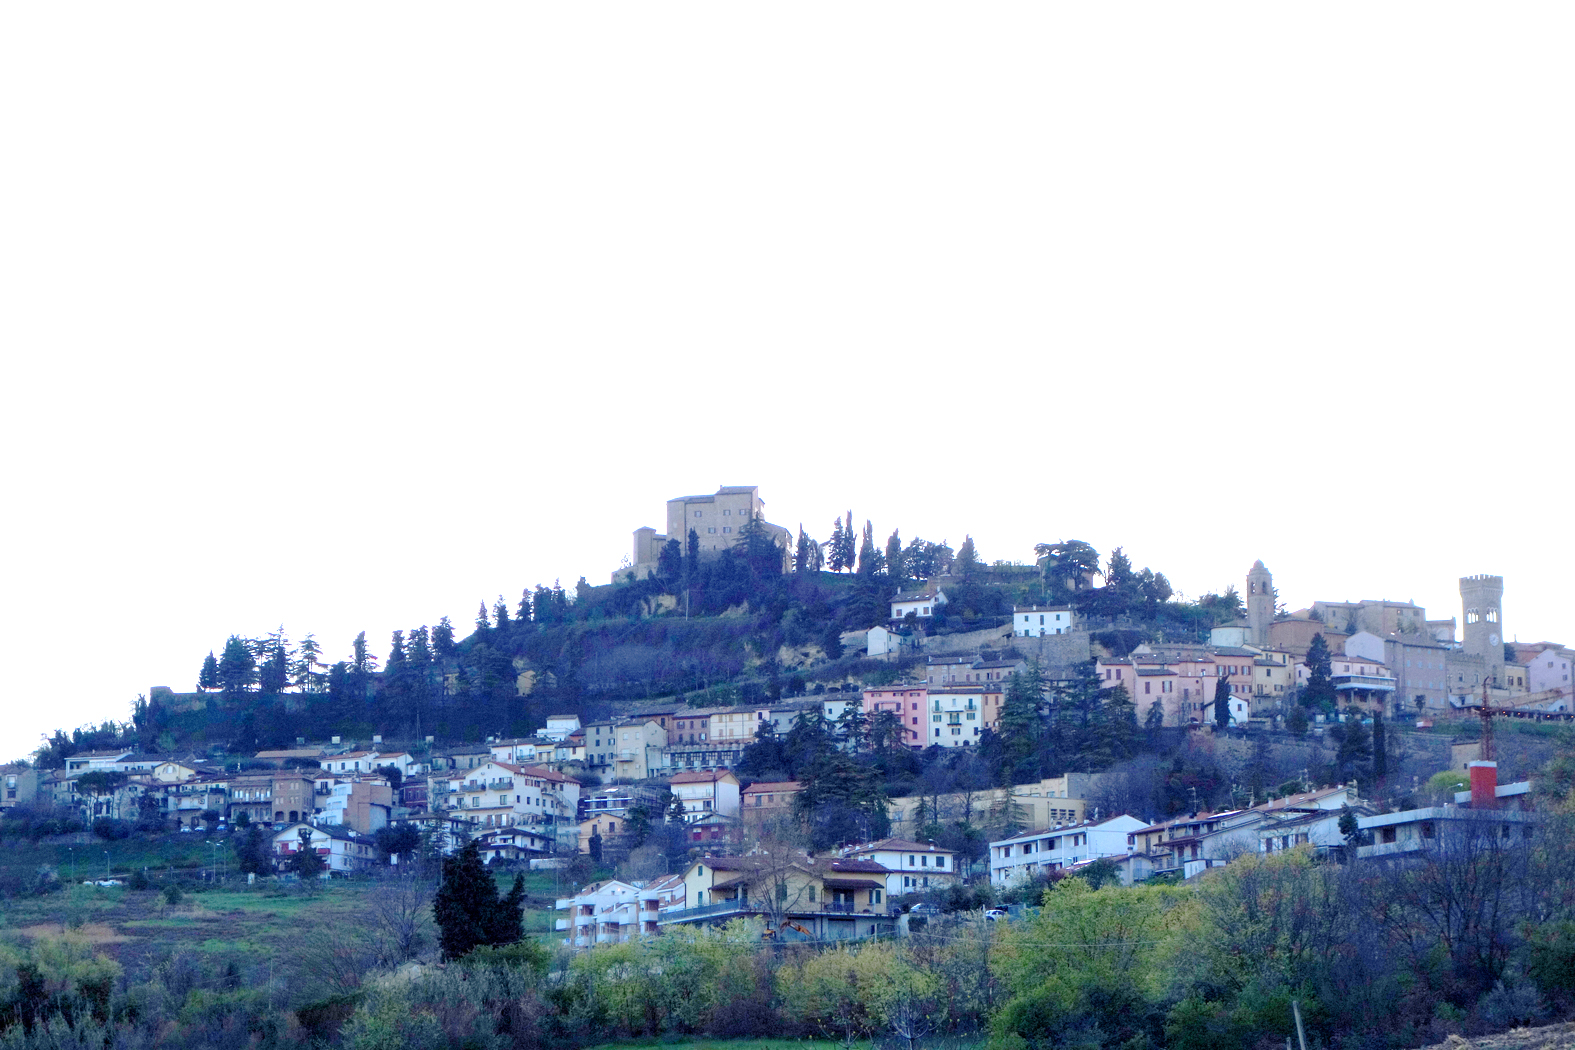 "View on Bertinoro with the old castle, the venue of the 14th Bioinformatics and Systems Biology Spring School. © Anna Zappe, Wien""><img alt=""View on Bertinoro with the old castle, the venue of the 14th Bioinformatics and Systems Biology Spring School. © Anna Zappe, Wien"